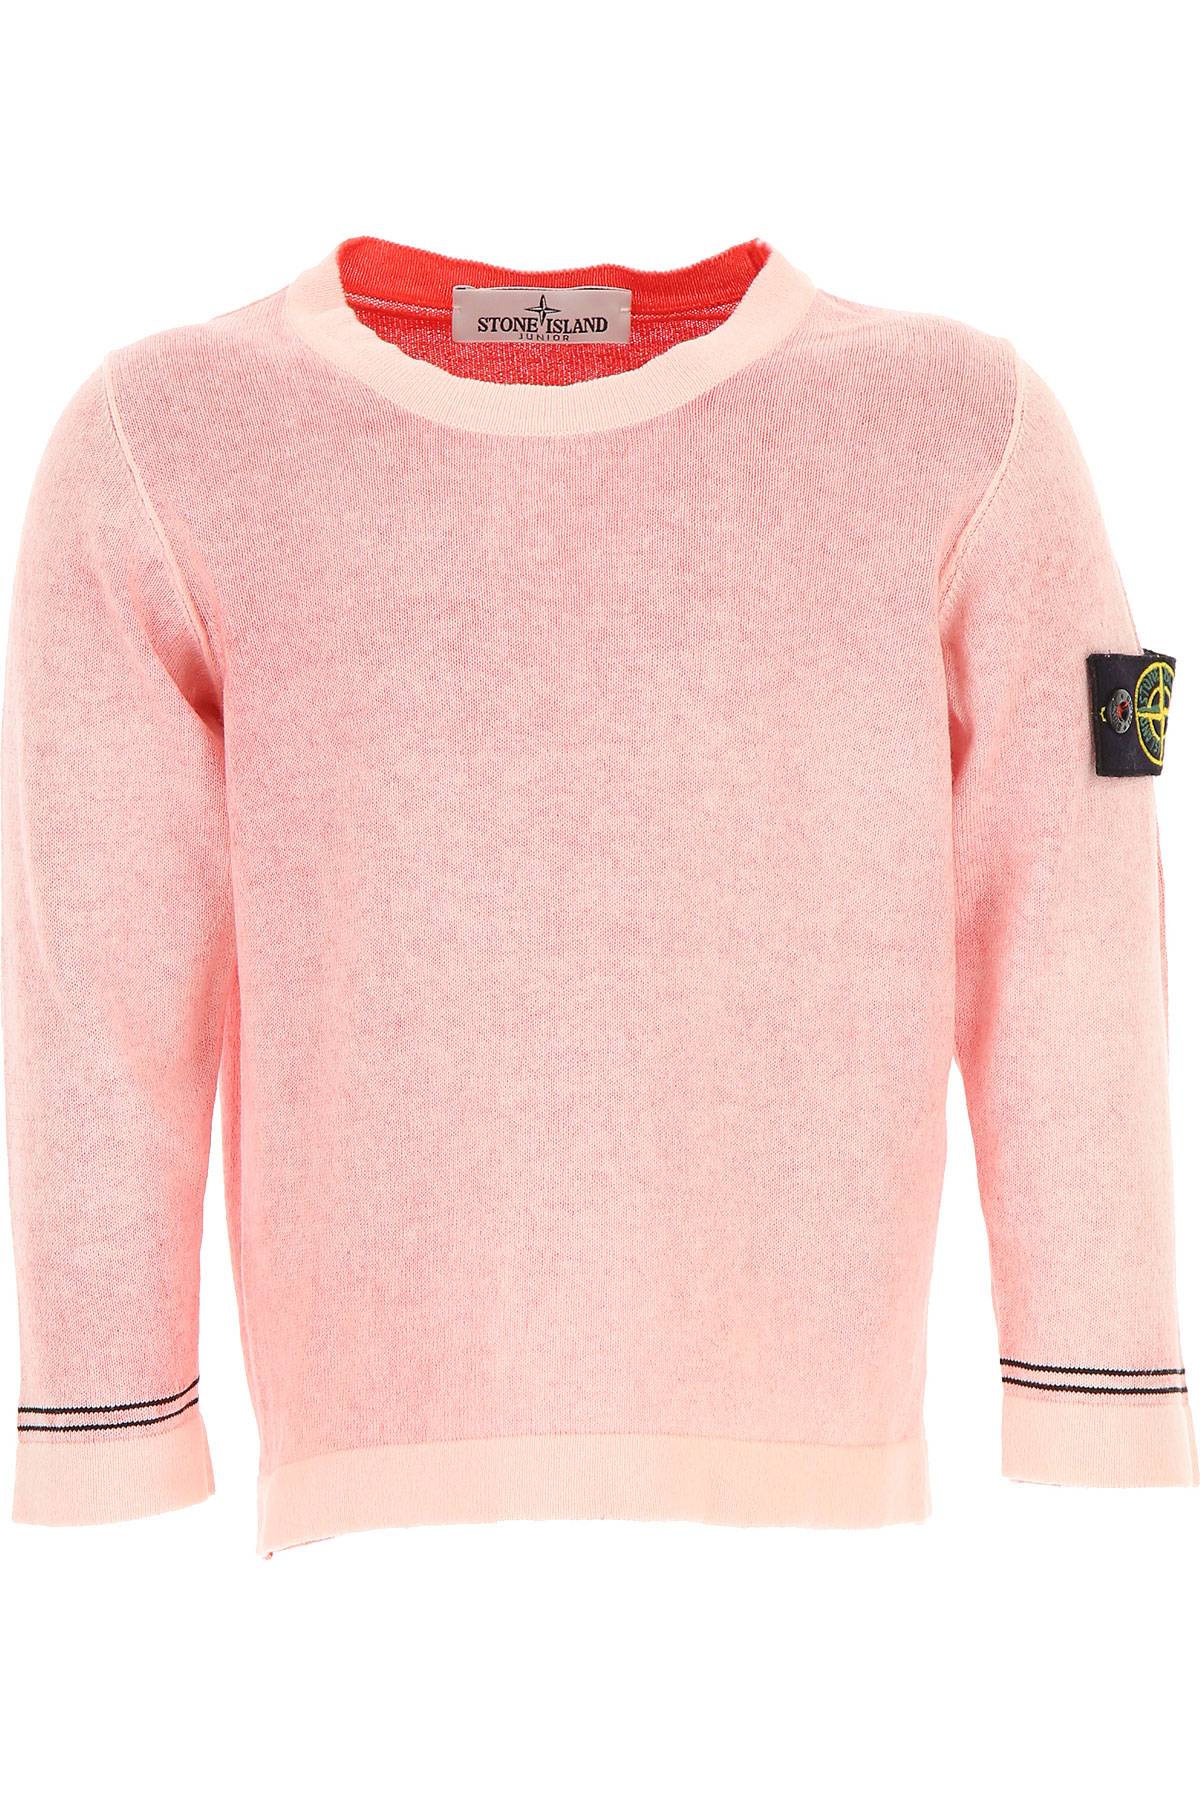 the latest 34063 a7410 Stone Island Outlet | Kids | Kids - When